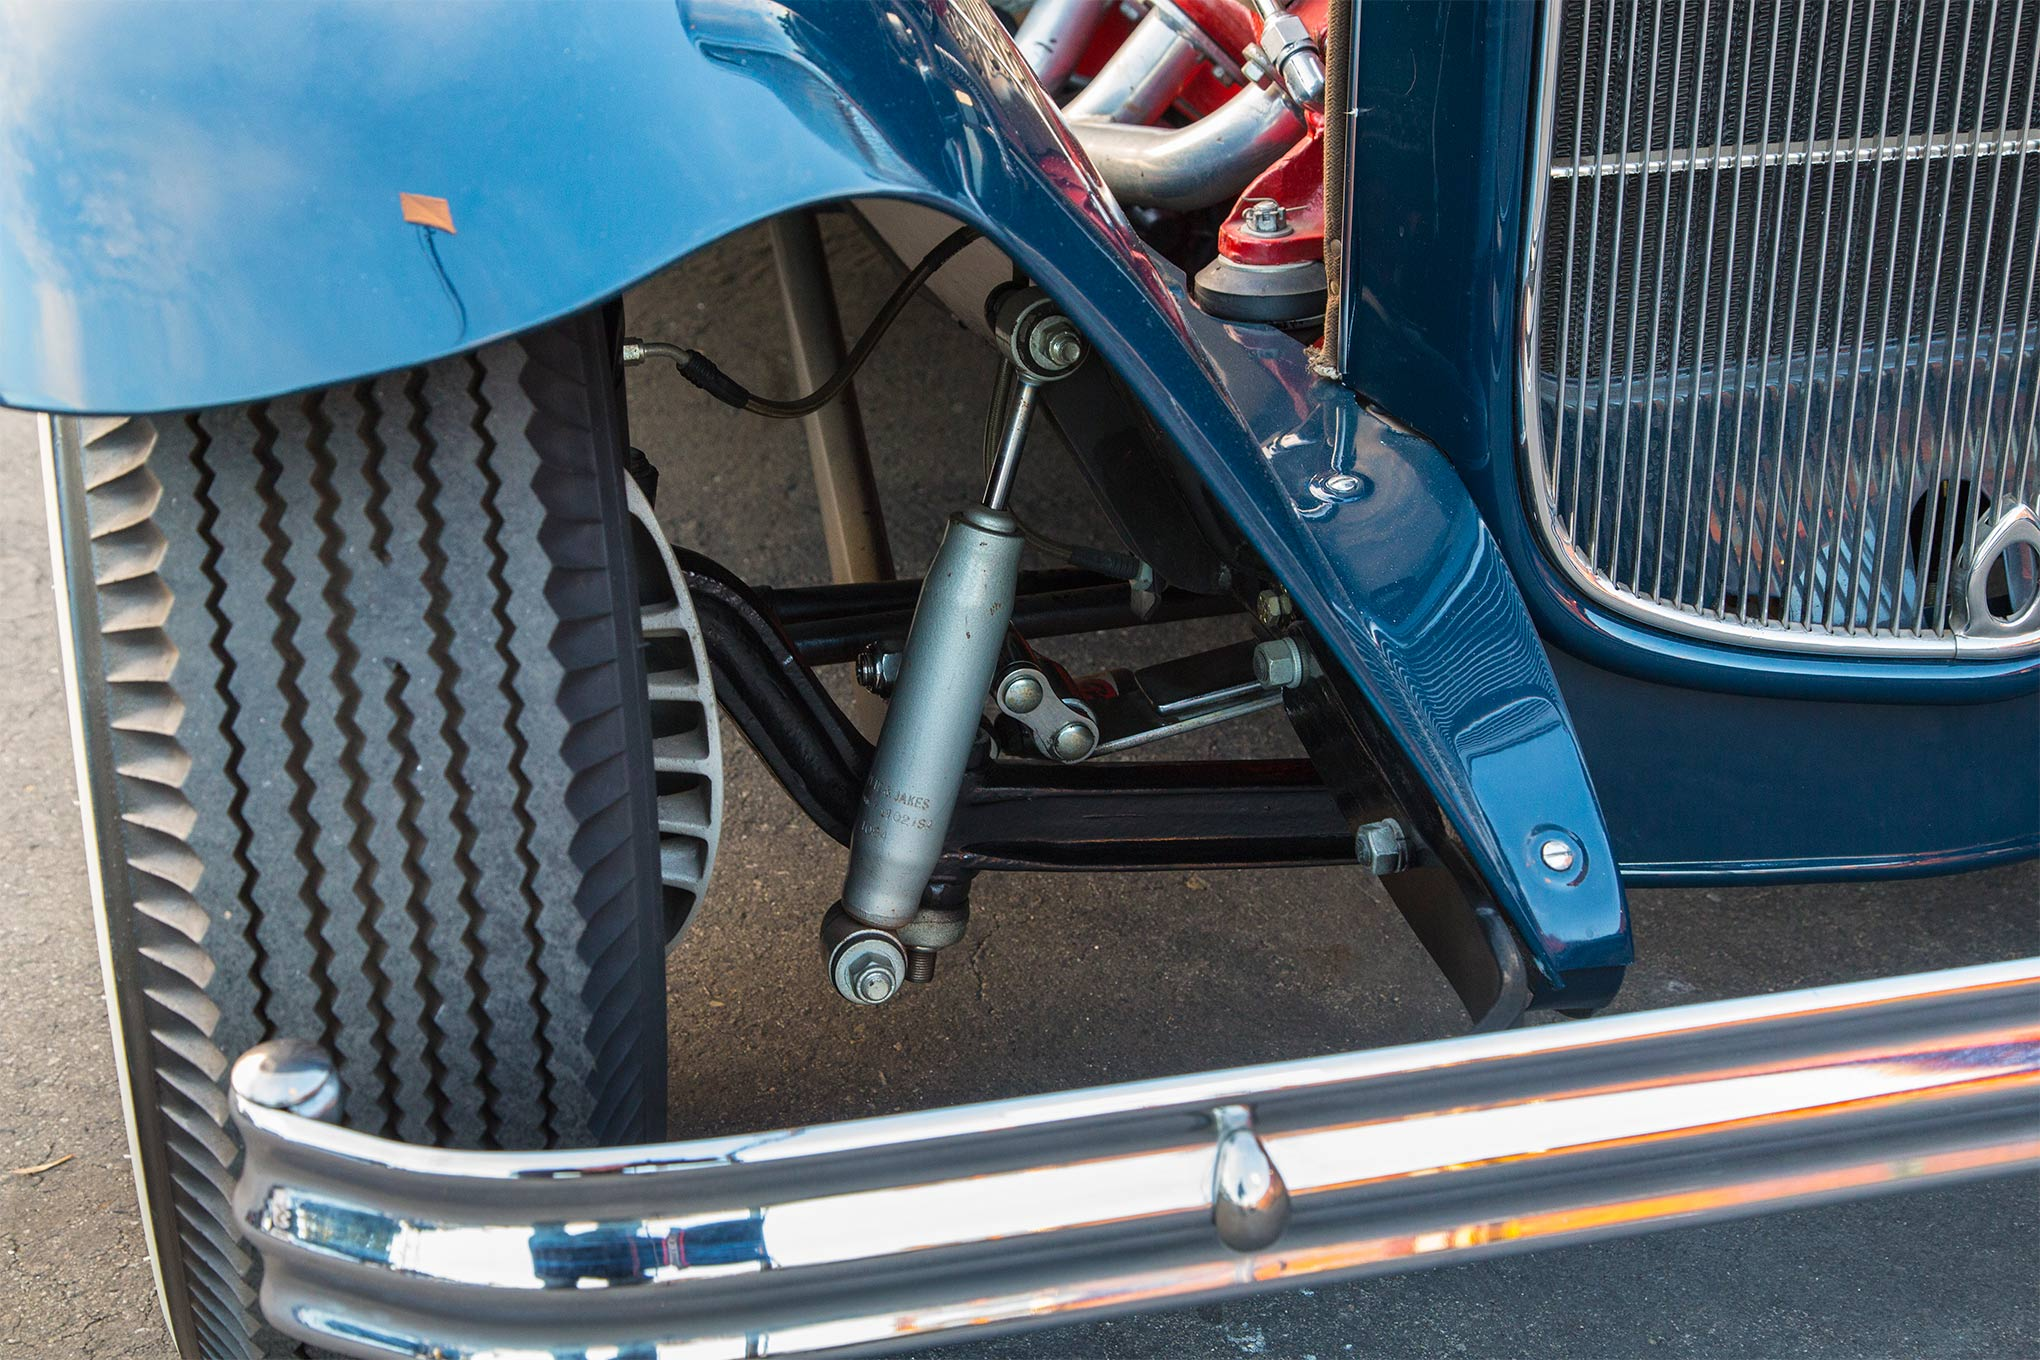 A 4-inch-dropped Model A axle is hung with split wishbones. The finned scoop peeking out from behind the tire isn't for a Buick brake drum but for a set of Functional Fakes from Deuce Manufacturing, aluminum covers that mimic the look of the iconic Buick binder but instead house contemporary disc brakes.